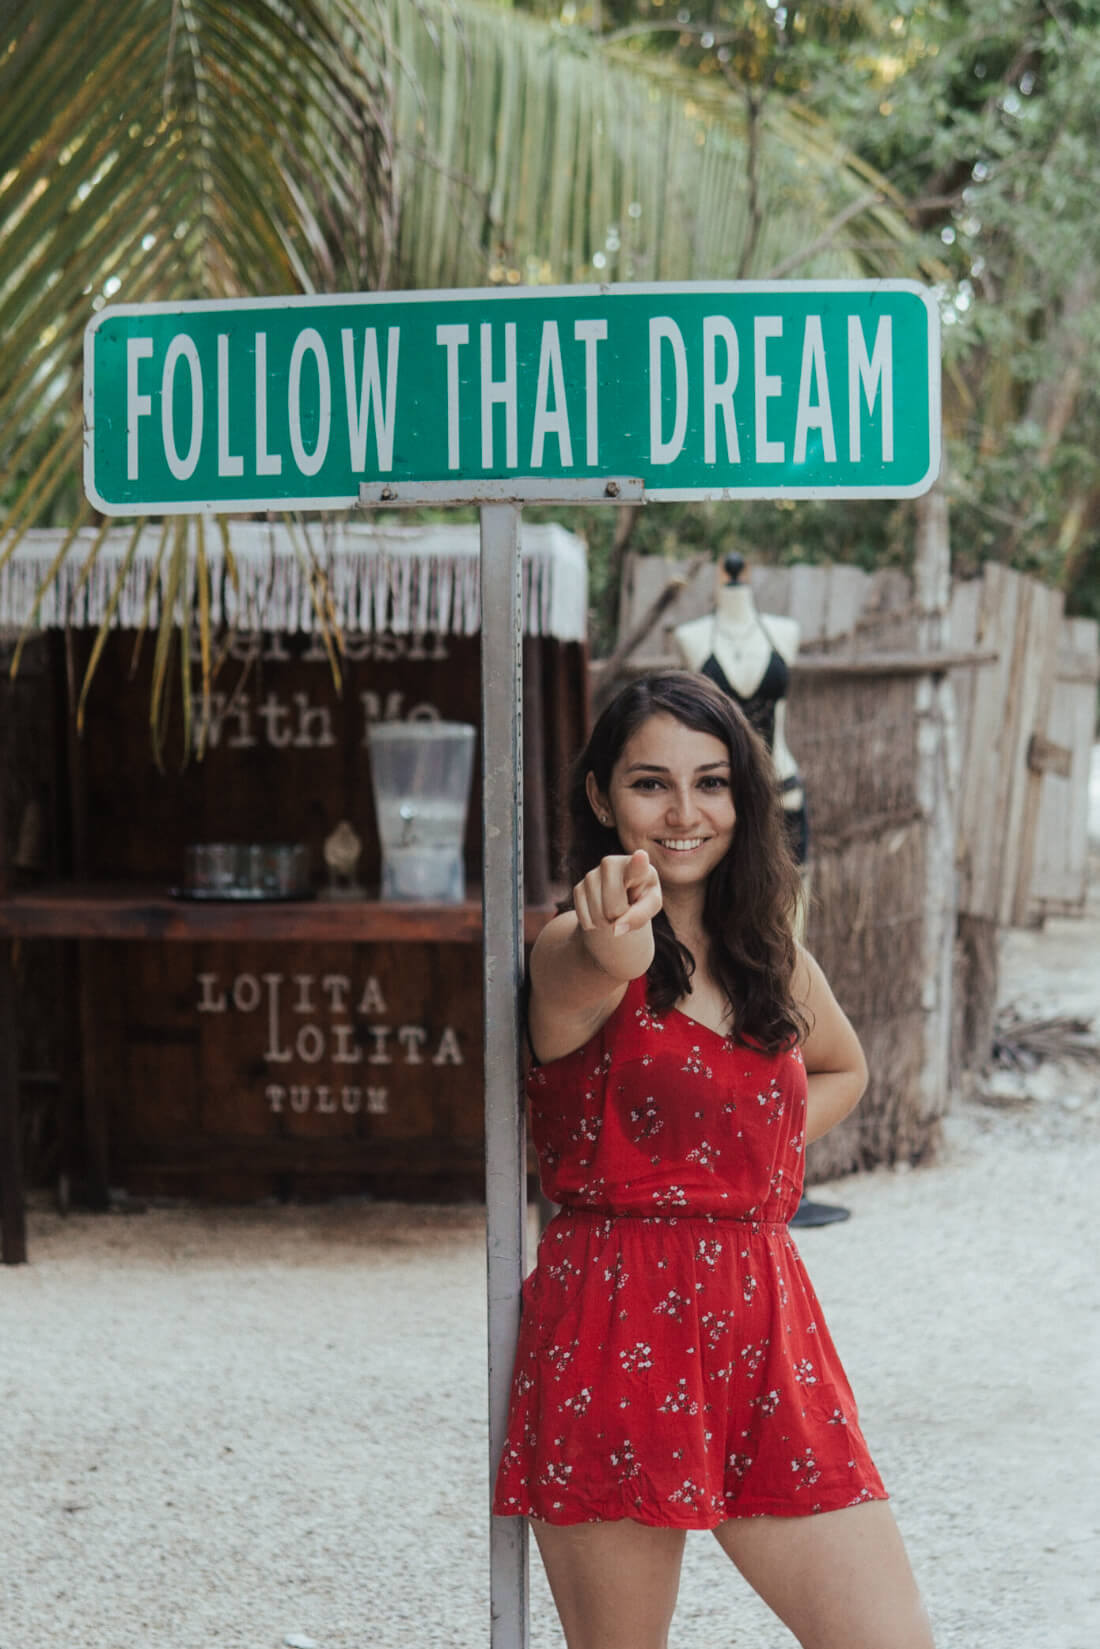 Stacey Valle pointing at the camera while standing under a sign that says Follow that dream